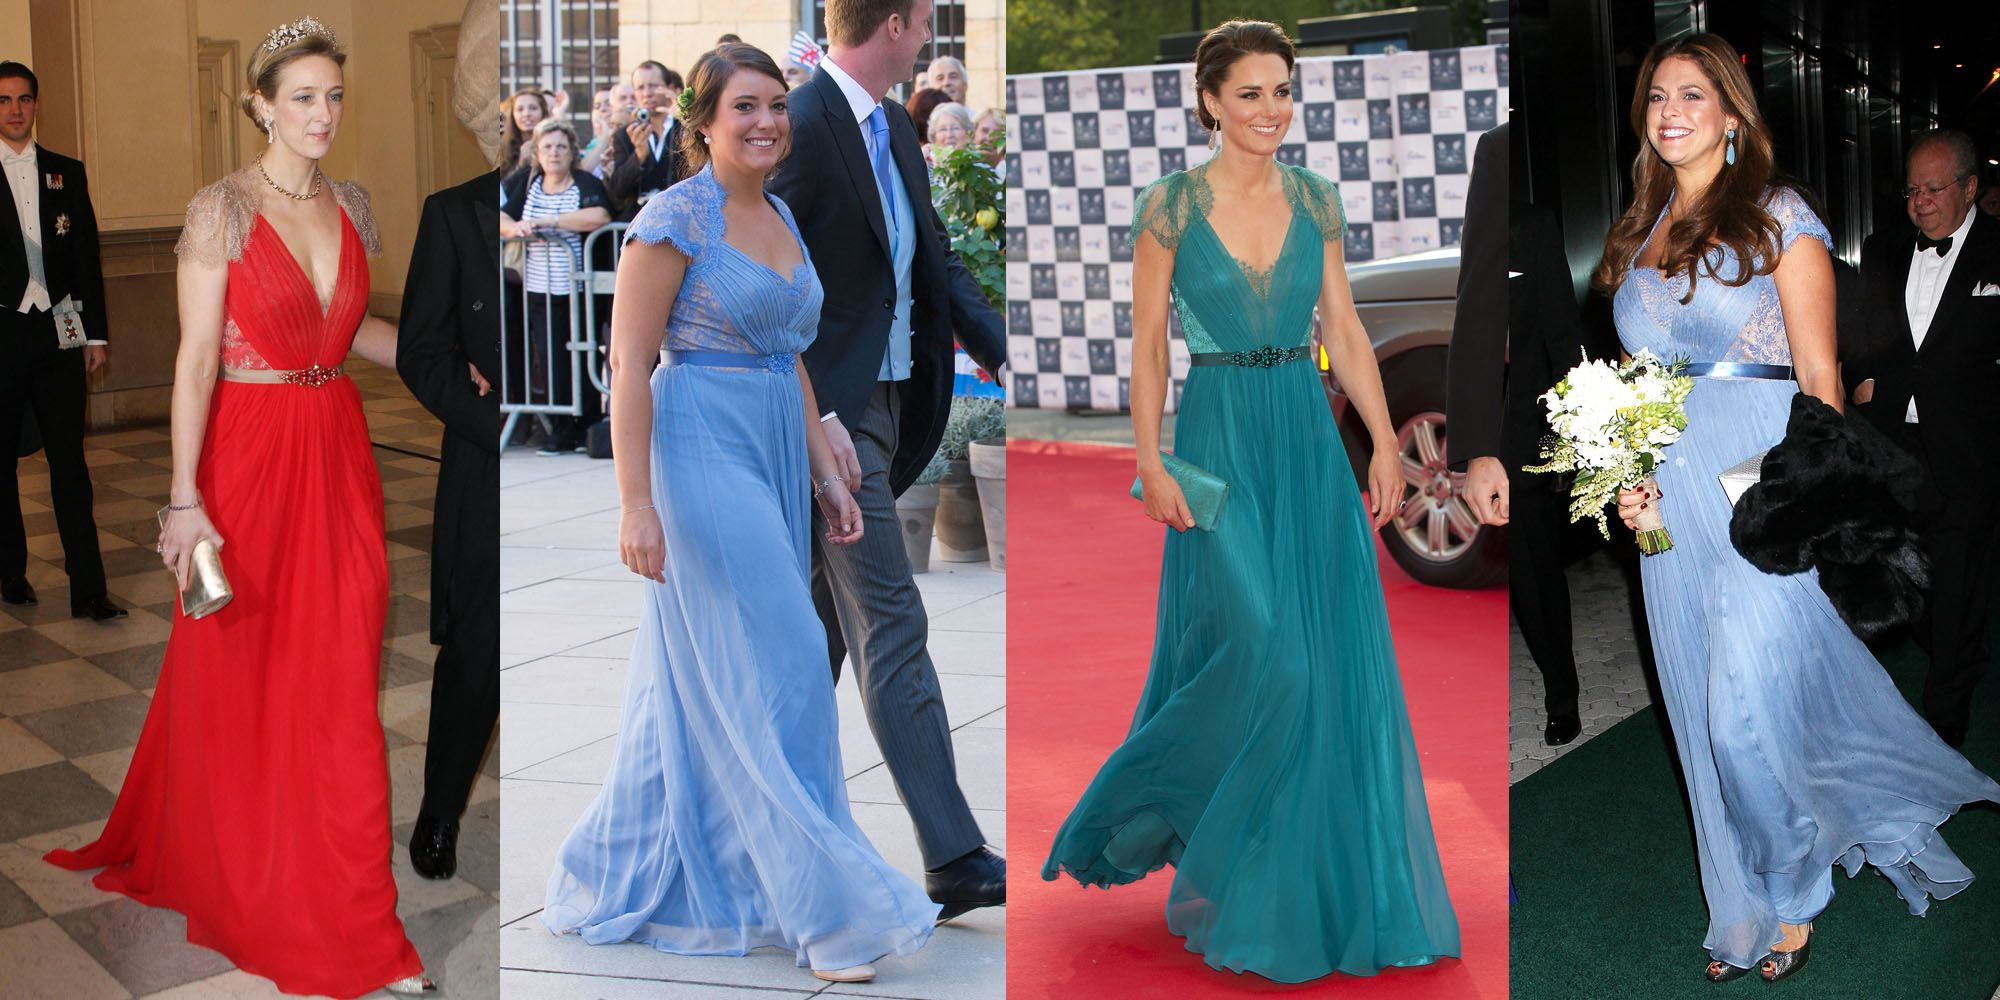 10 Times Royals Wore The Same Outfits Royal Women In The Same Dress